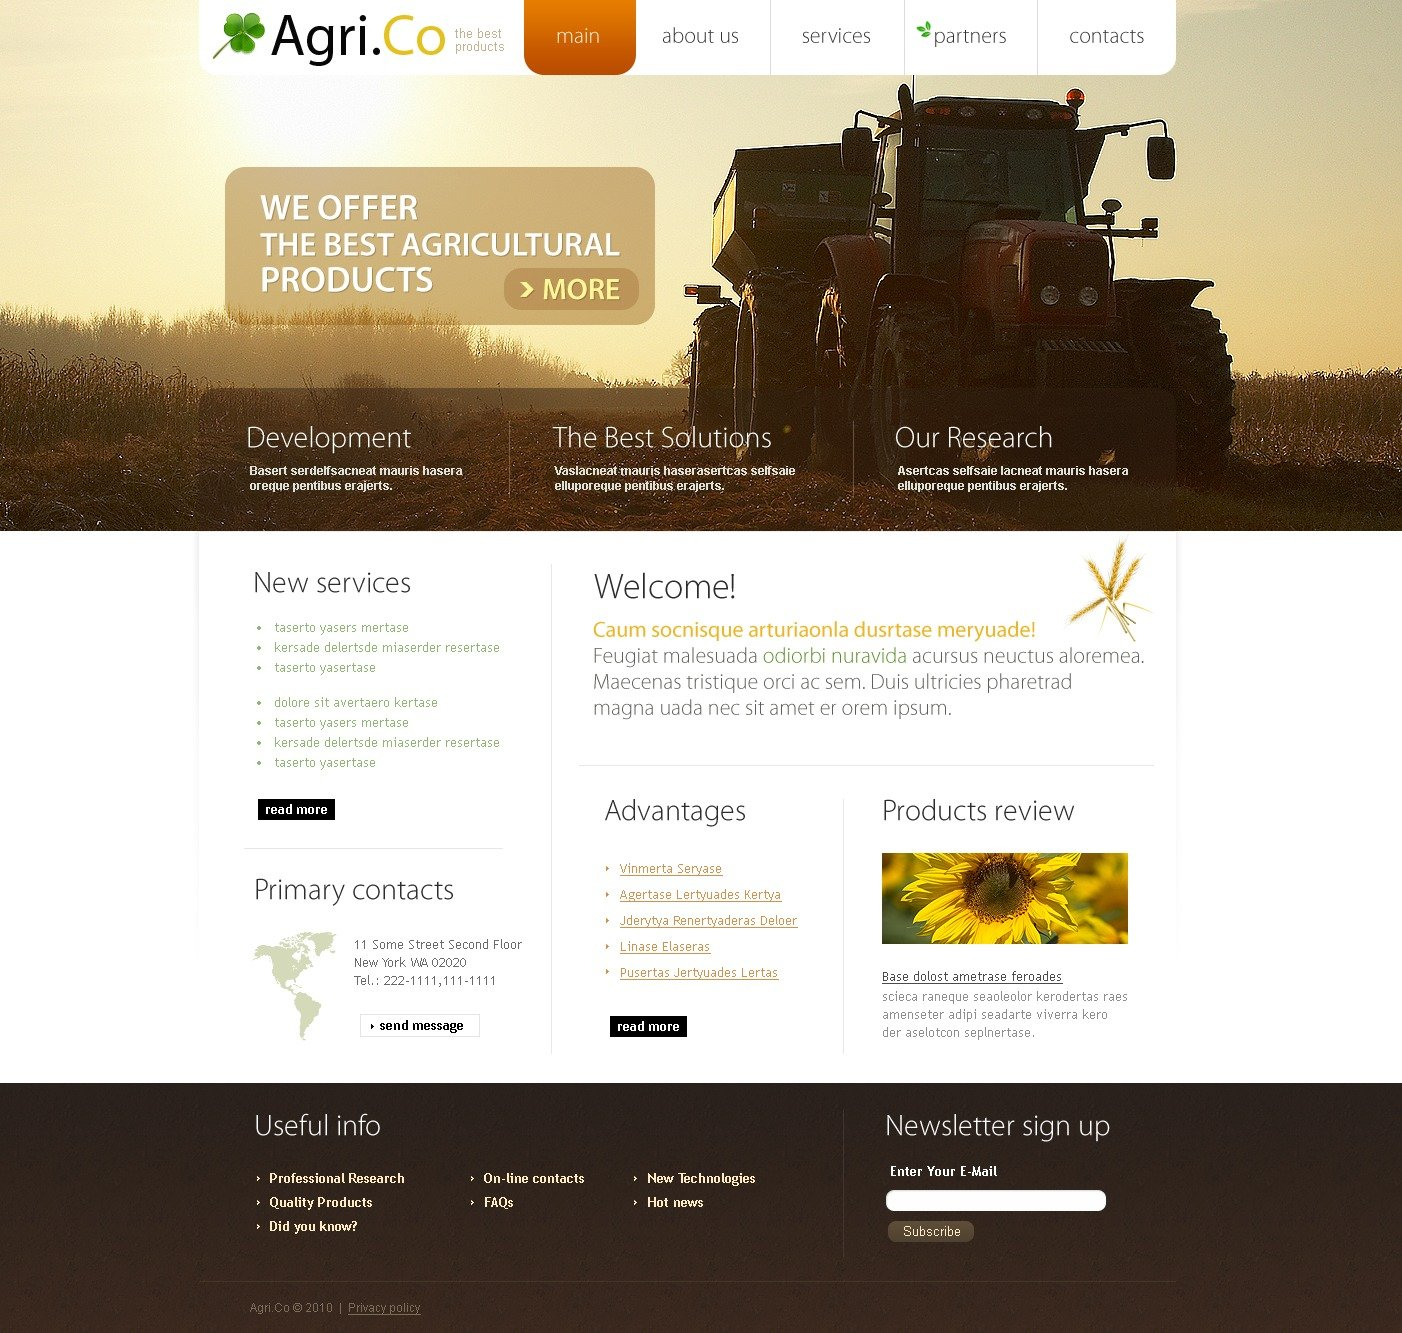 The Agri Company PSD Design 54124, one of the best PSD templates of its kind (agriculture, wide, jquery), also known as agri company PSD template, agriculture company PSD template, business PSD template, grain-crops PSD template, cereals PSD template, field PSD template, combine PSD template, harvest PSD template, farming PSD template, plants PSD template, services PSD template, products solutions PSD template, market PSD template, delivery PSD template, resource PSD template, grassland PSD template, equipment PSD template, nitrates PSD template, fertilizer PSD template, clients PSD template, partners PSD template, innovations PSD template, support PSD template, information dealer PSD template, stocks PSD template, team and related with agri company, agriculture company, business, grain-crops, cereals, field, combine, harvest, farming, plants, services, products solutions, market, delivery, resource, grassland, equipment, nitrates, fertilizer, clients, partners, innovations, support, information dealer, stocks, team, etc.